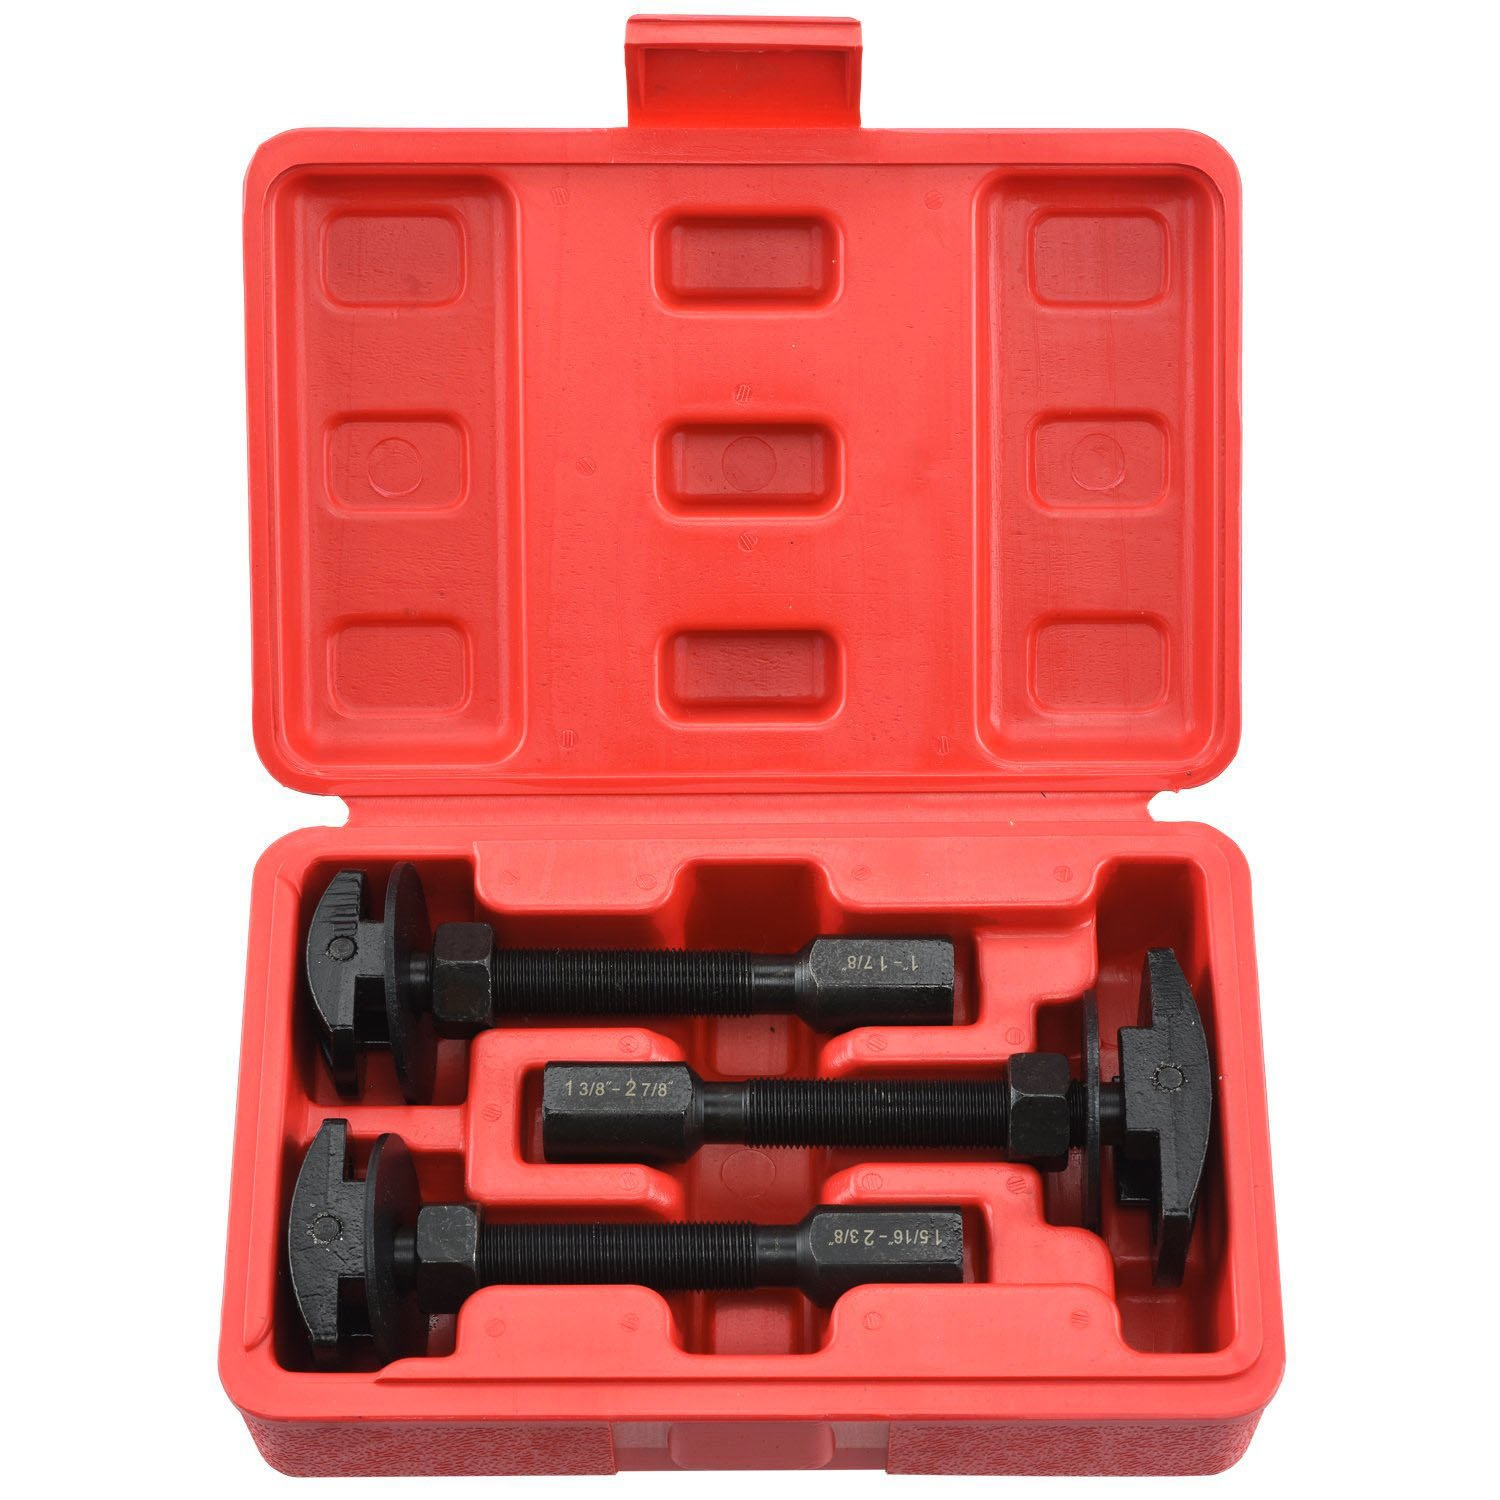 Neiko 20721A Rear Axle Bearing Puller Set Ridgerock Tools Inc